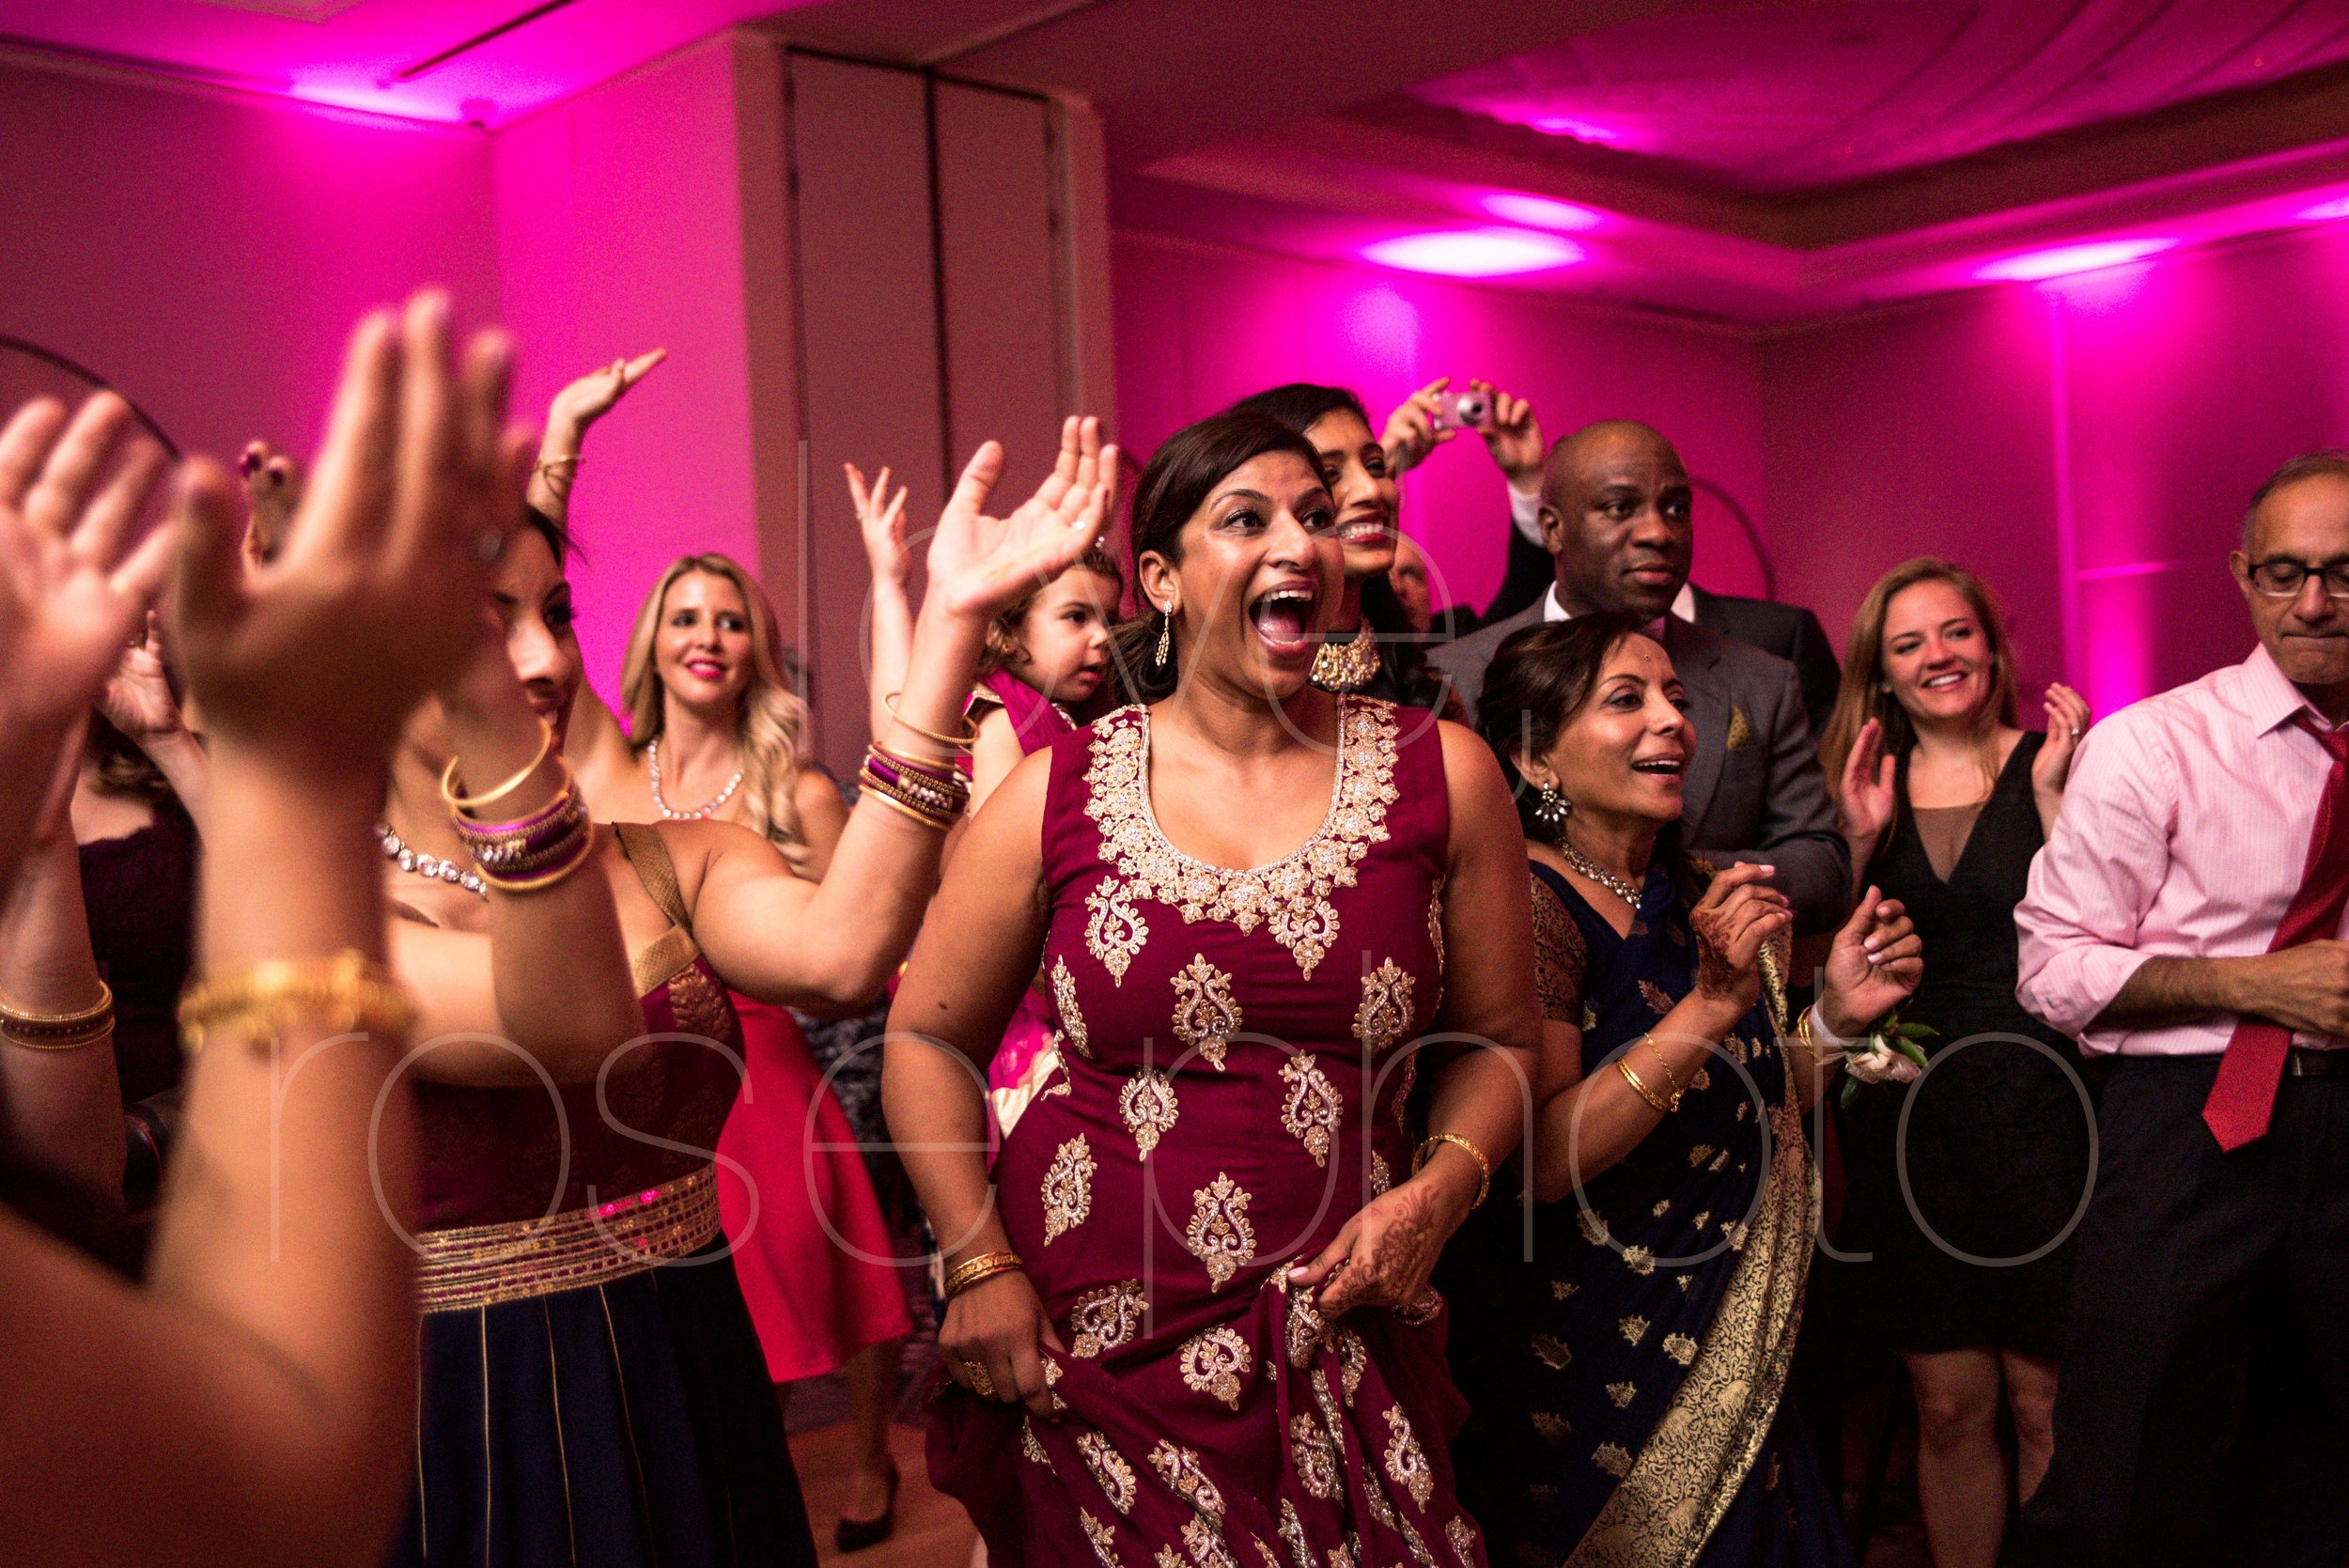 Best of Chicago wedidngphotography LondonHouse Indian wedding -34.jpg